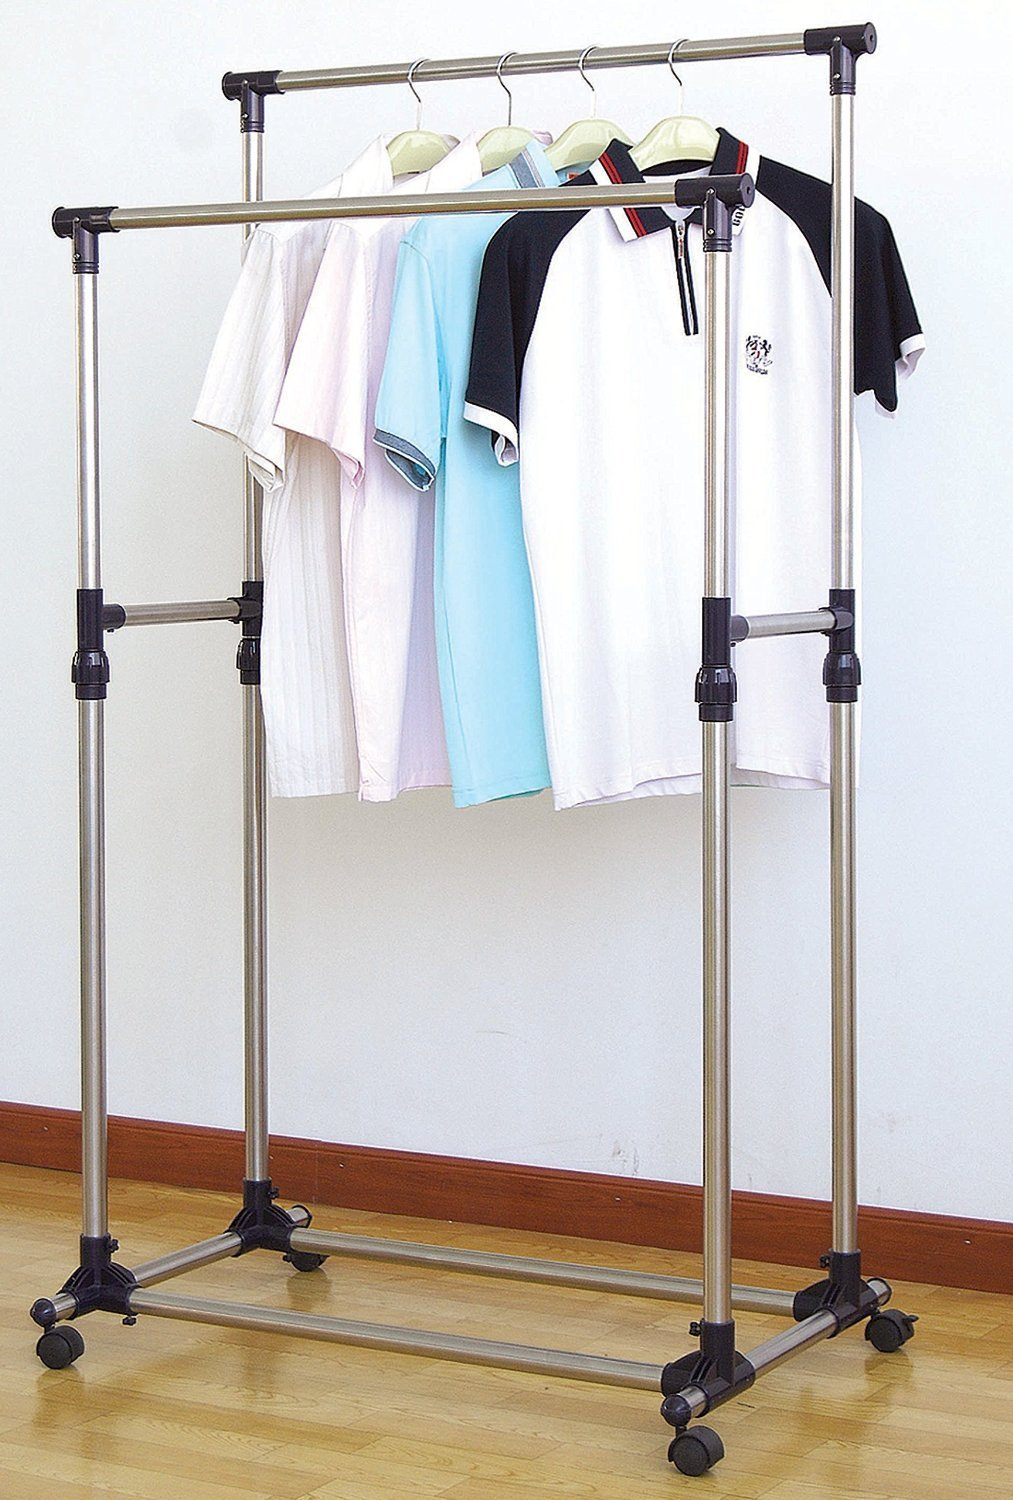 Beau ProSource Premium Heavy Duty Double Rail Adjustable Telescopic Rolling  Clothing And Garment Rack   Walmart.com